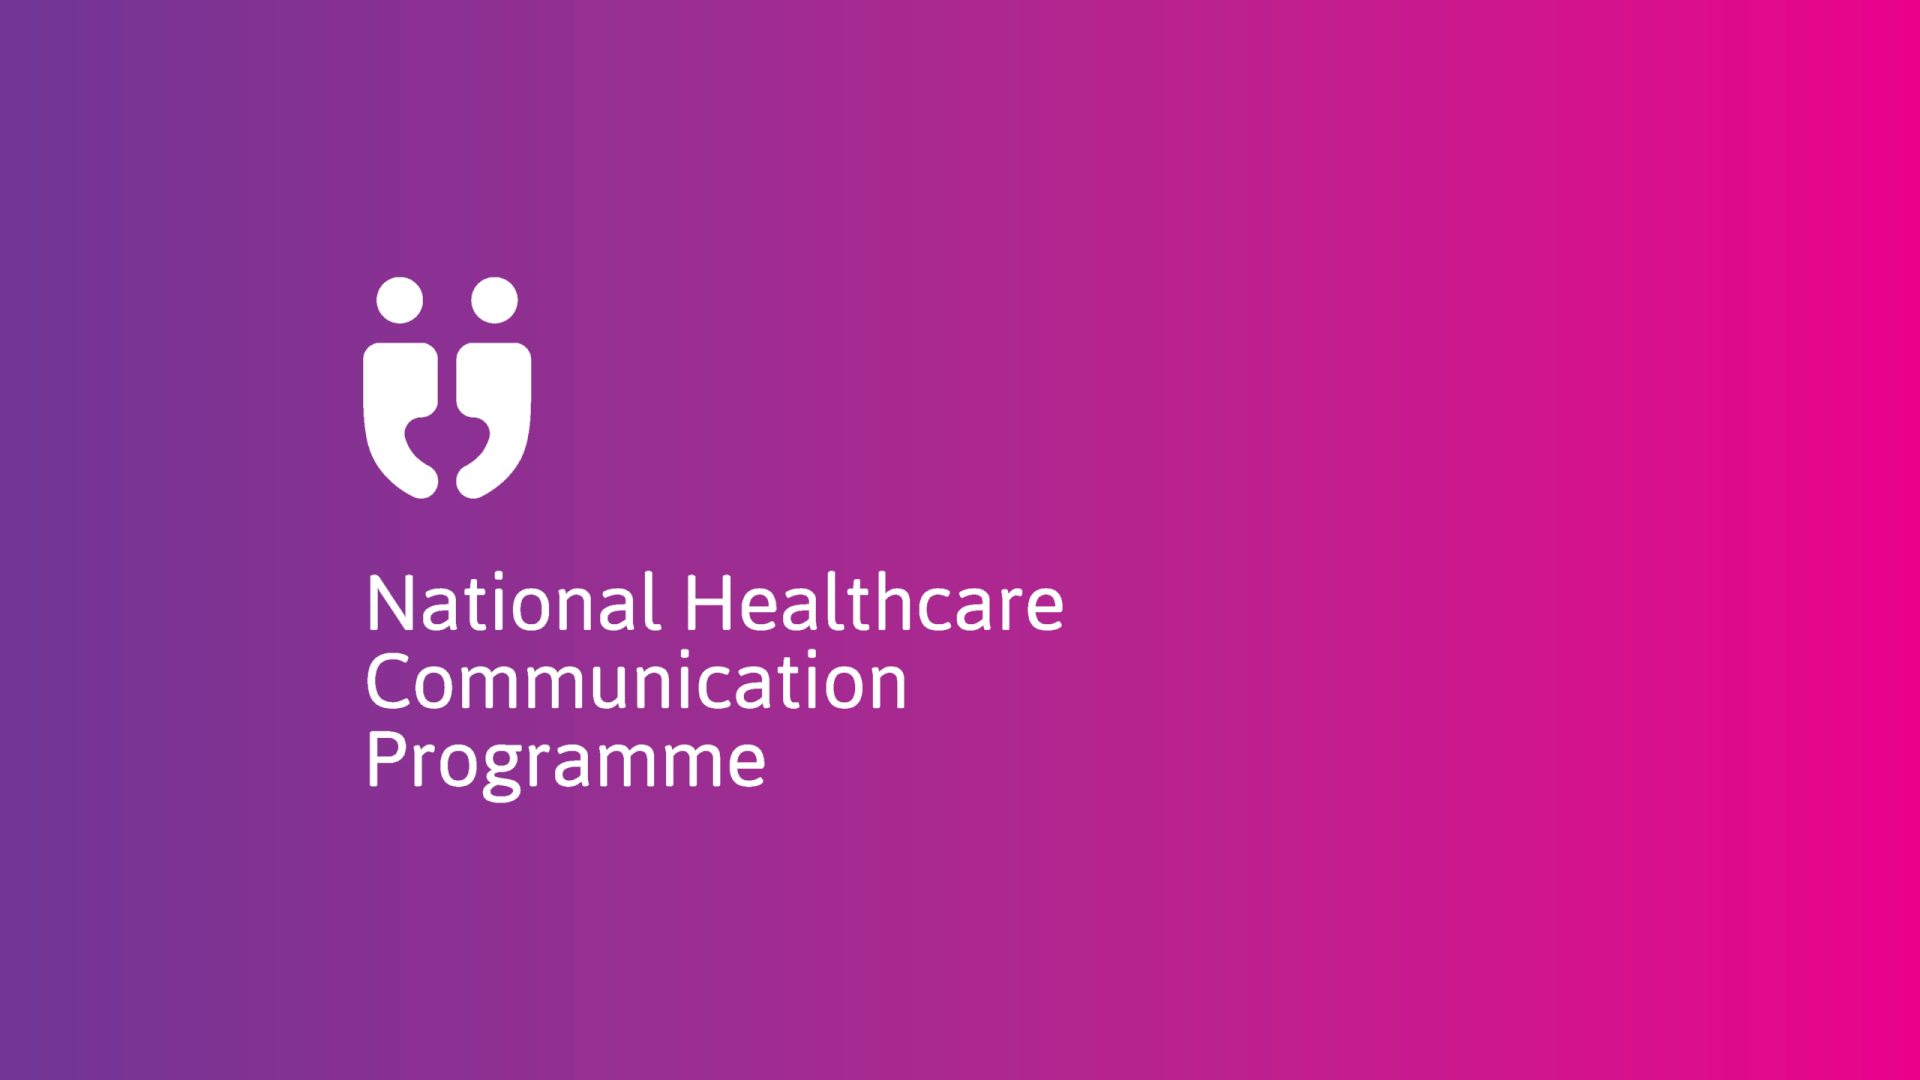 HSE national healthcare communication programme vertical reversed logo